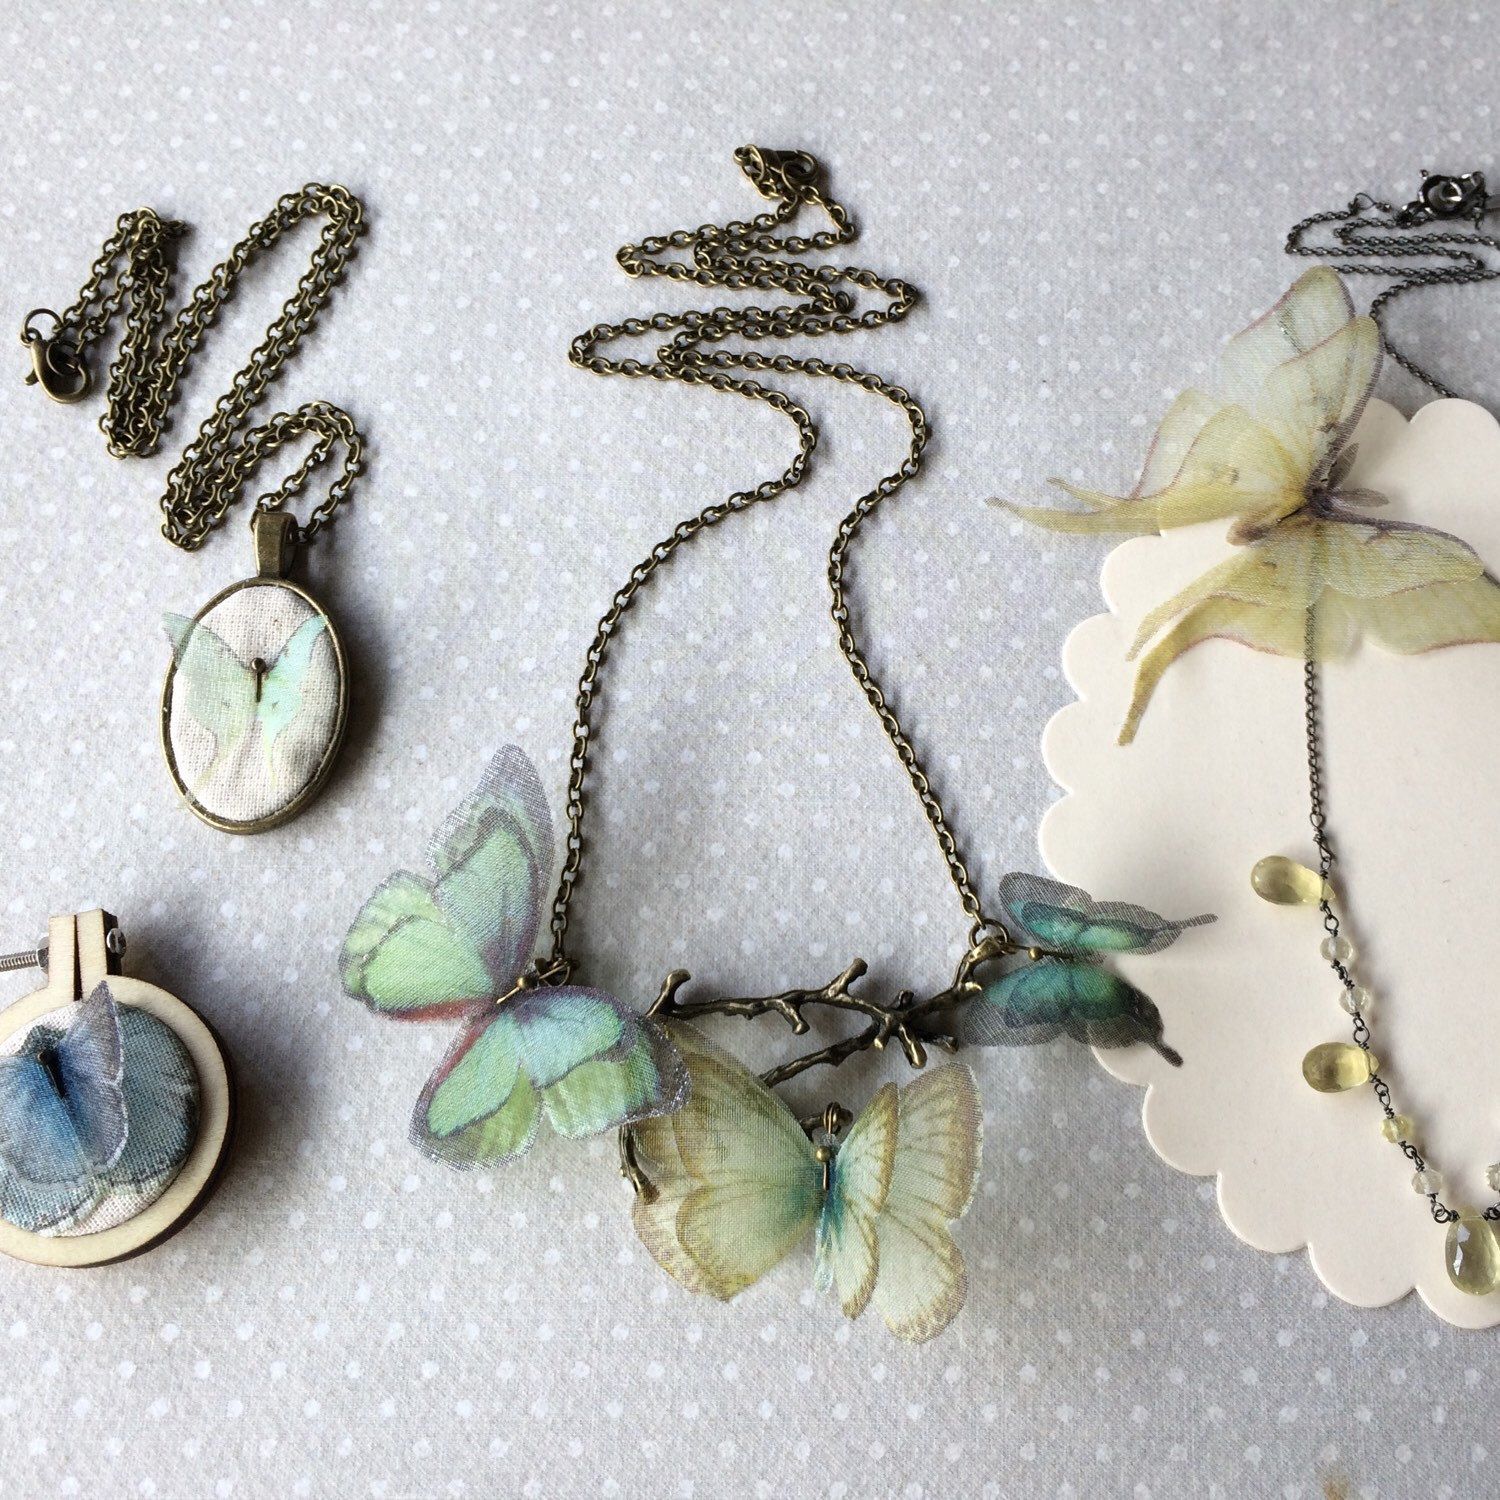 New precious pieces of jewelry.. listed right now! I love all of them